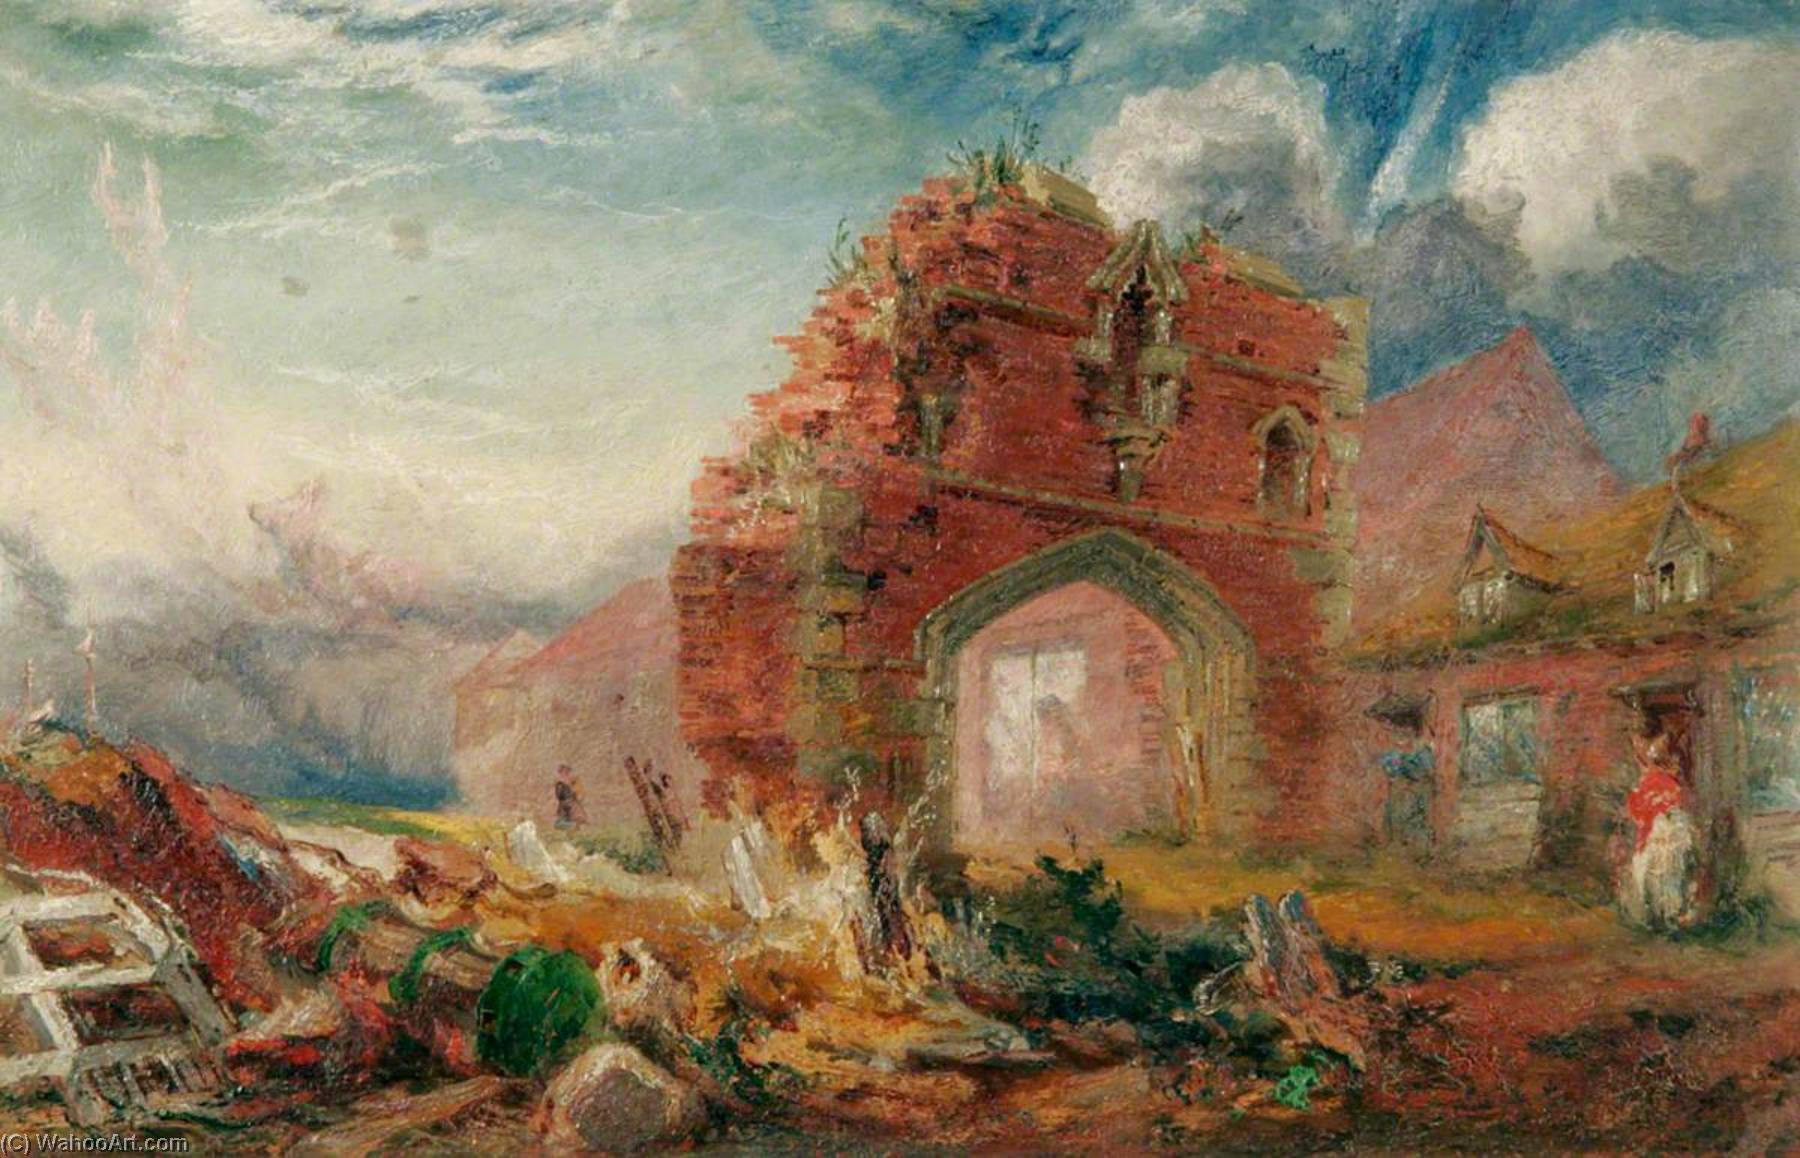 Friar`s Gate (Carmelite Arch) by Henry Baines | Oil Painting | ArtsDot.com